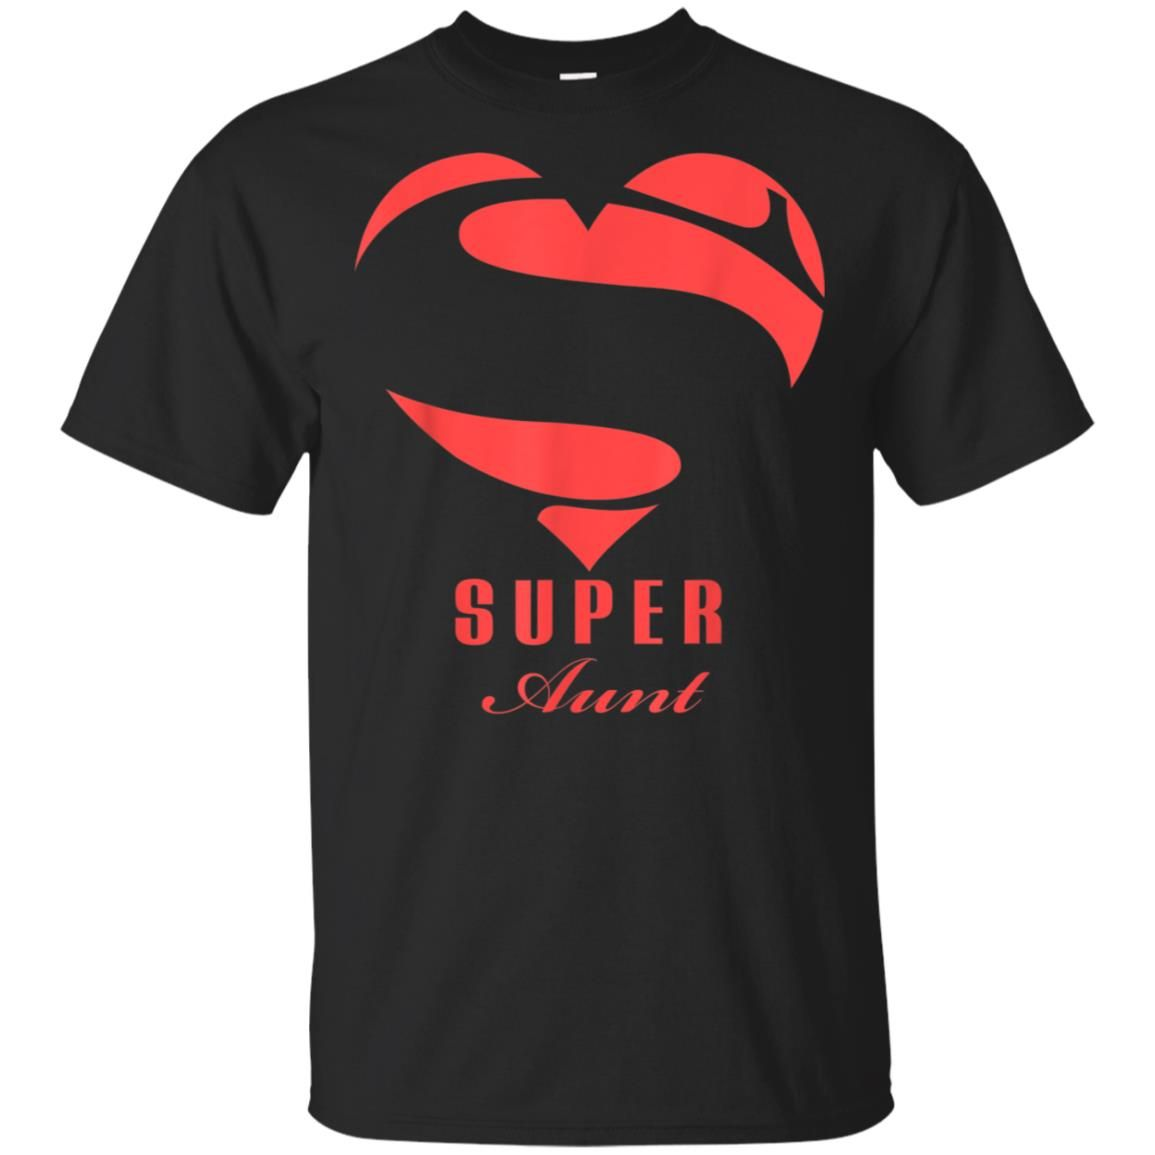 Super Aunt Superhero Gift Mother Father Day XL Black T-shirt Hoodie Sweater #superherogifts